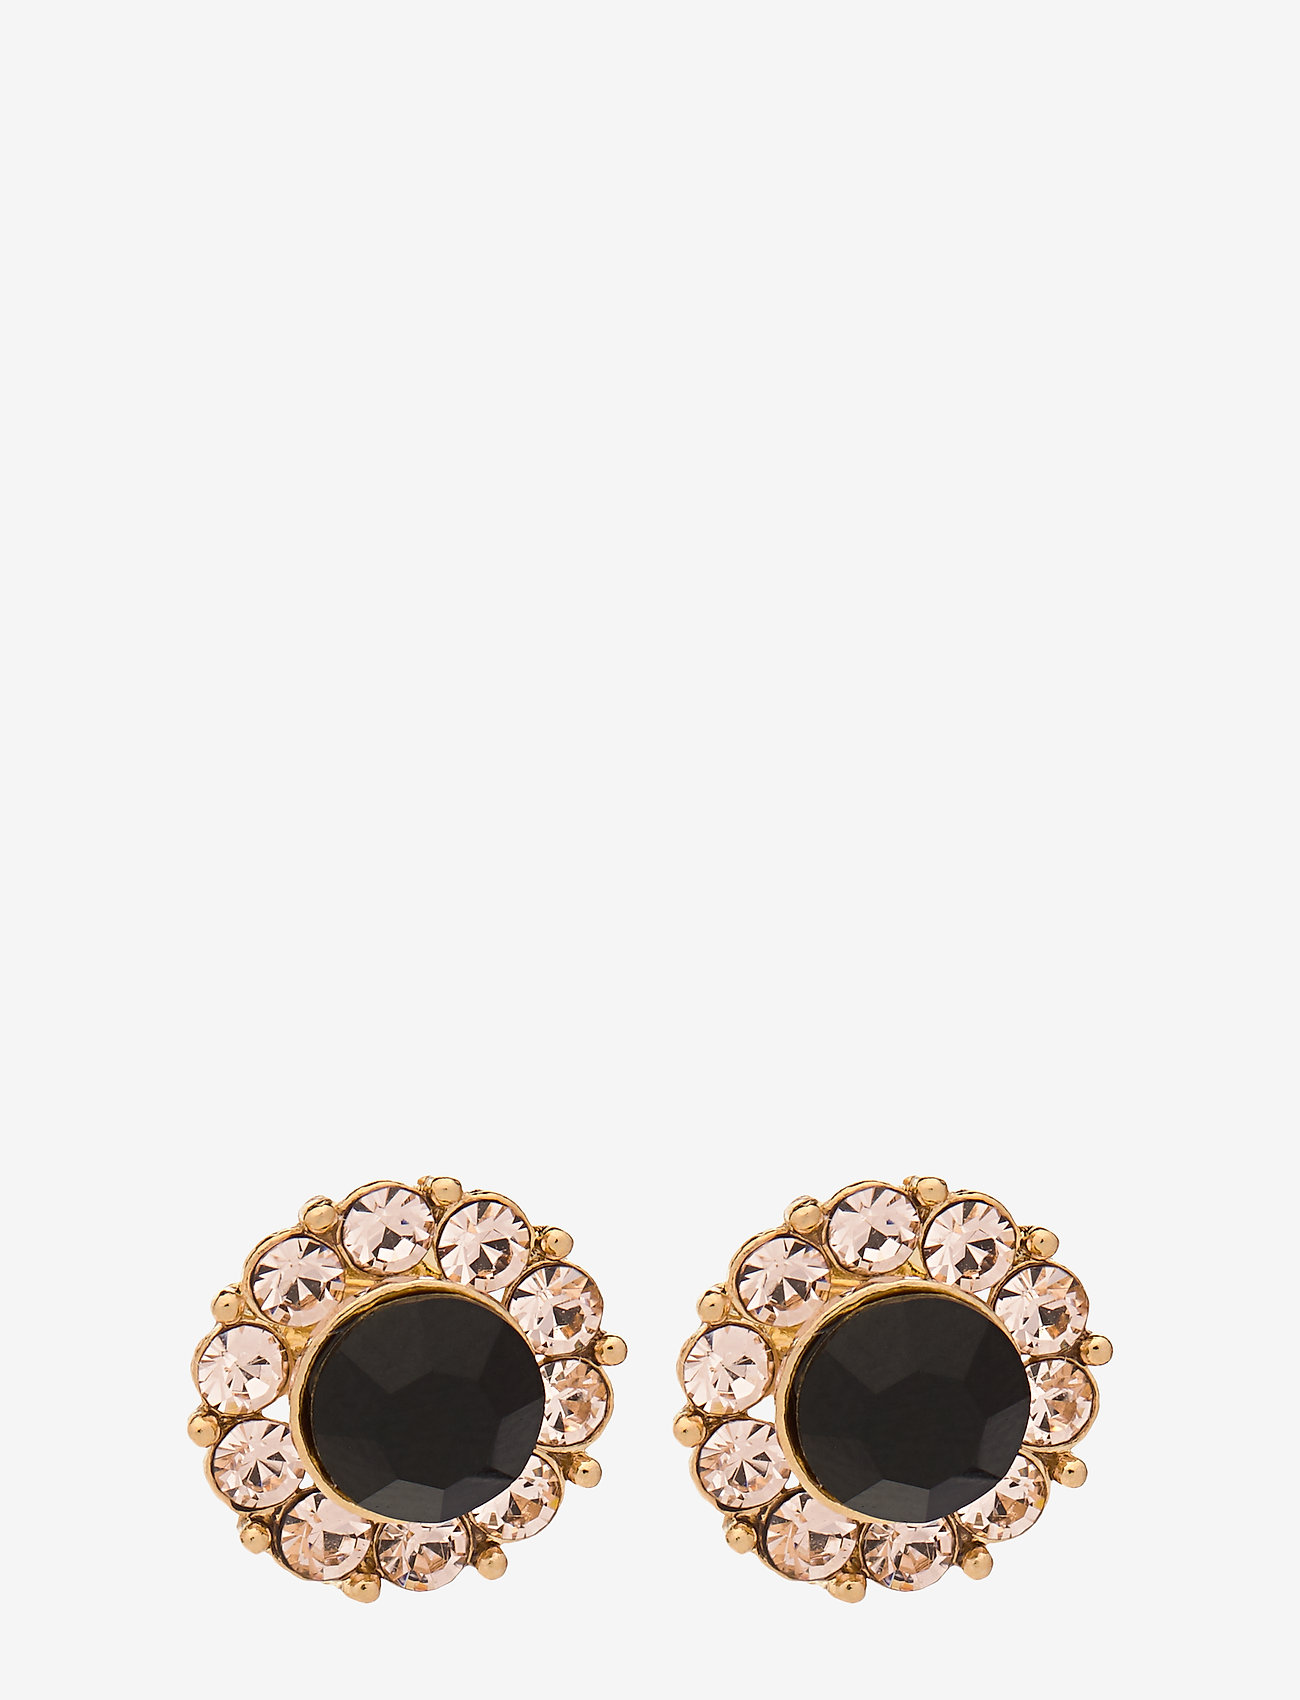 LILY AND ROSE - Miss Sofia earrings - Jet - studs - jet